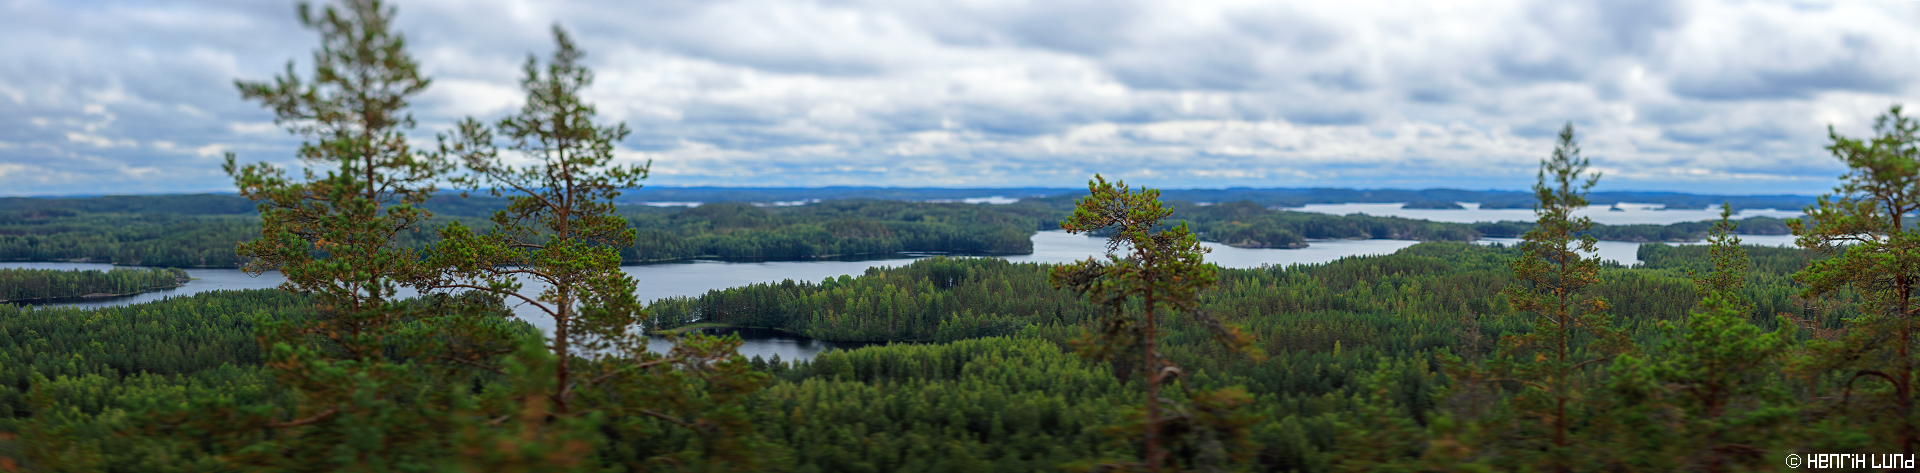 Panorama landscape from Neitvuori, Mikkeli in Southern Savonia region, taken with tilted TSE-lens and panoramic nodal shift. September 2015.